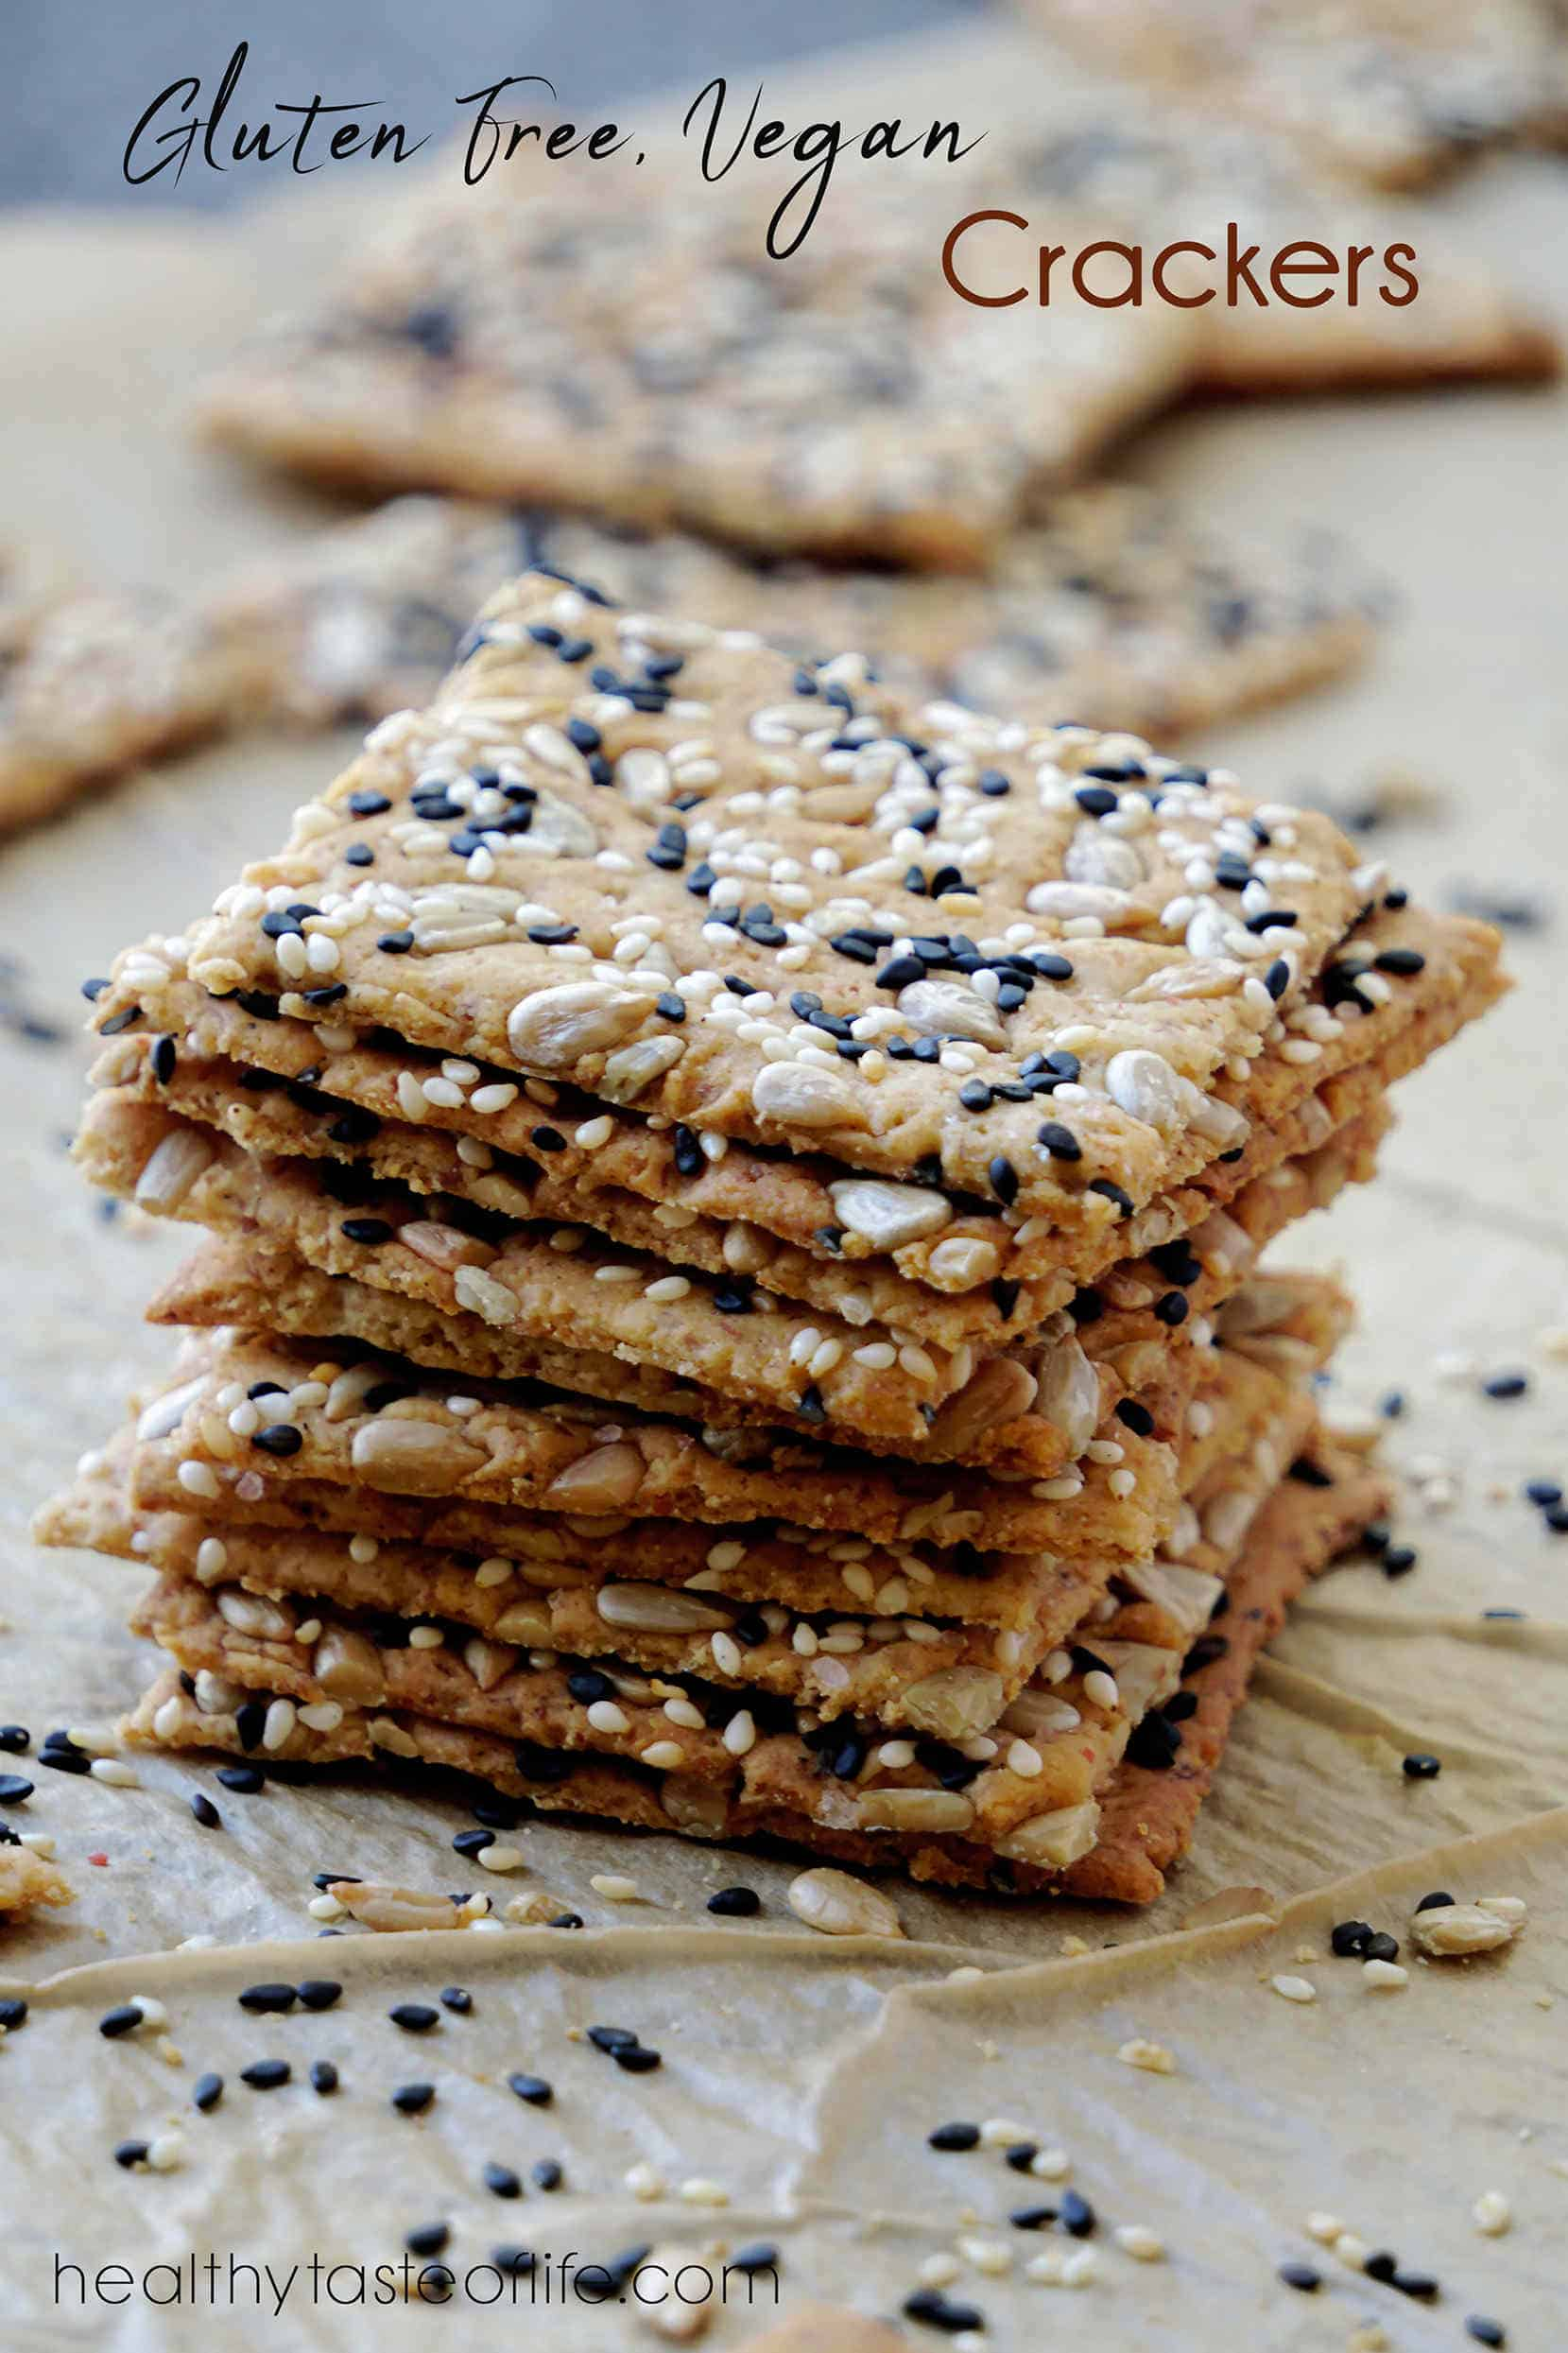 Healthy gluten free sourdough crackers recipe made with a mix of gluten free flours, a variety of seeds and gluten free sourdough starter discard These are crispy, thin, flaky, vegan gluten free crackers that are easy to make and ready in 30 minutes.